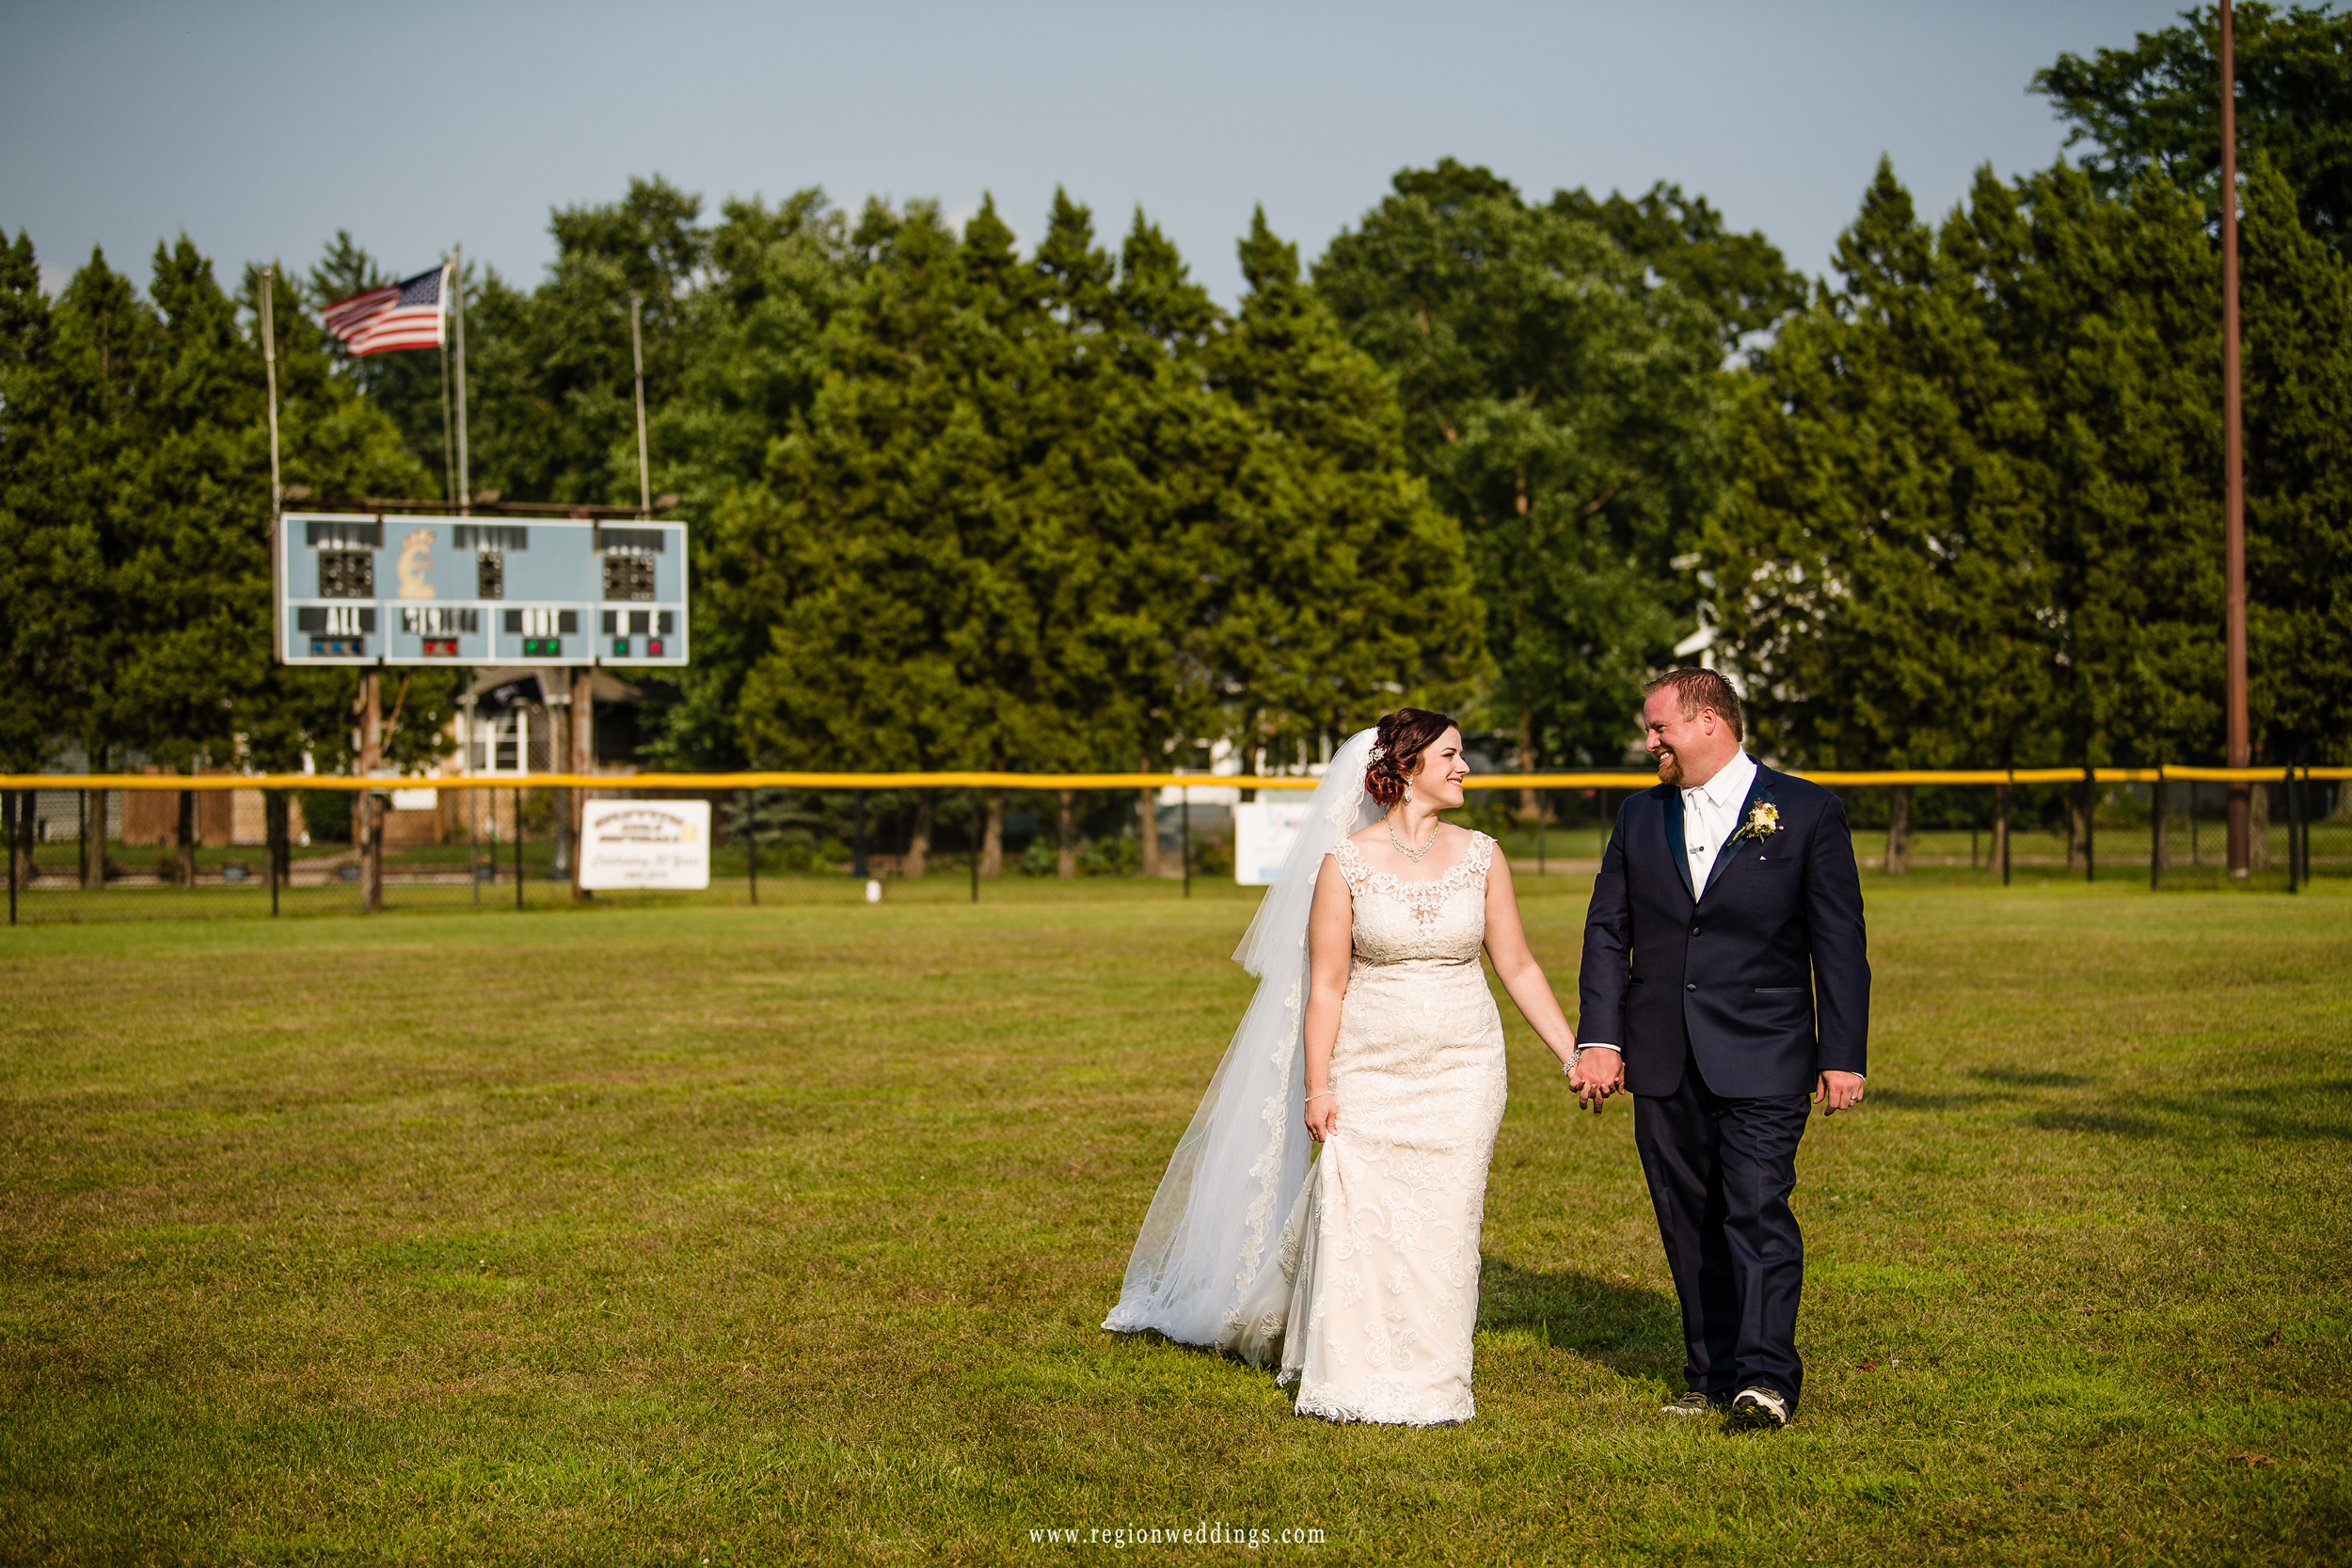 Bride and groom take a stroll in the outfield of the baseball field.